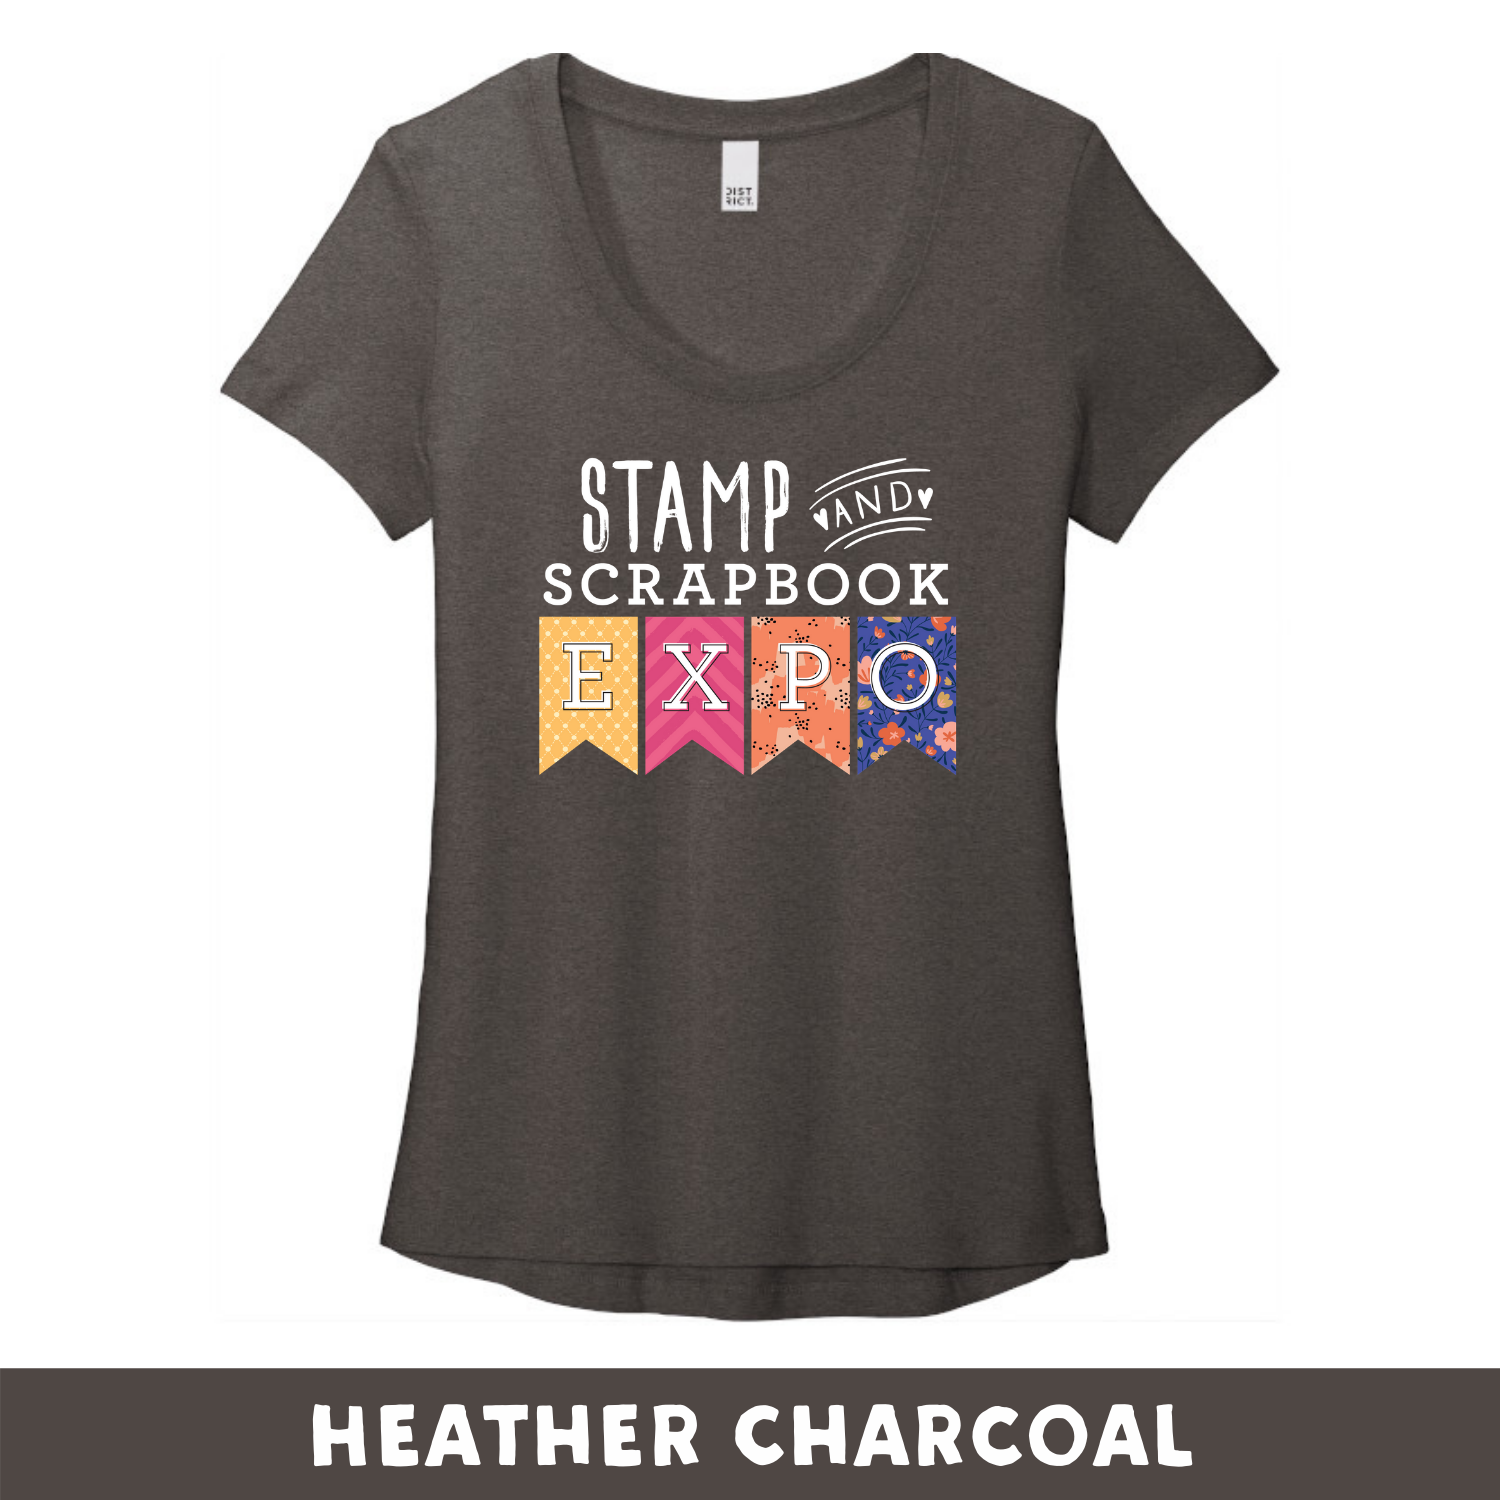 Heather Charcoal -  Woman's Cut Scoop Neck DT7501 - Stamp & Scrapbook Expo Color Logo